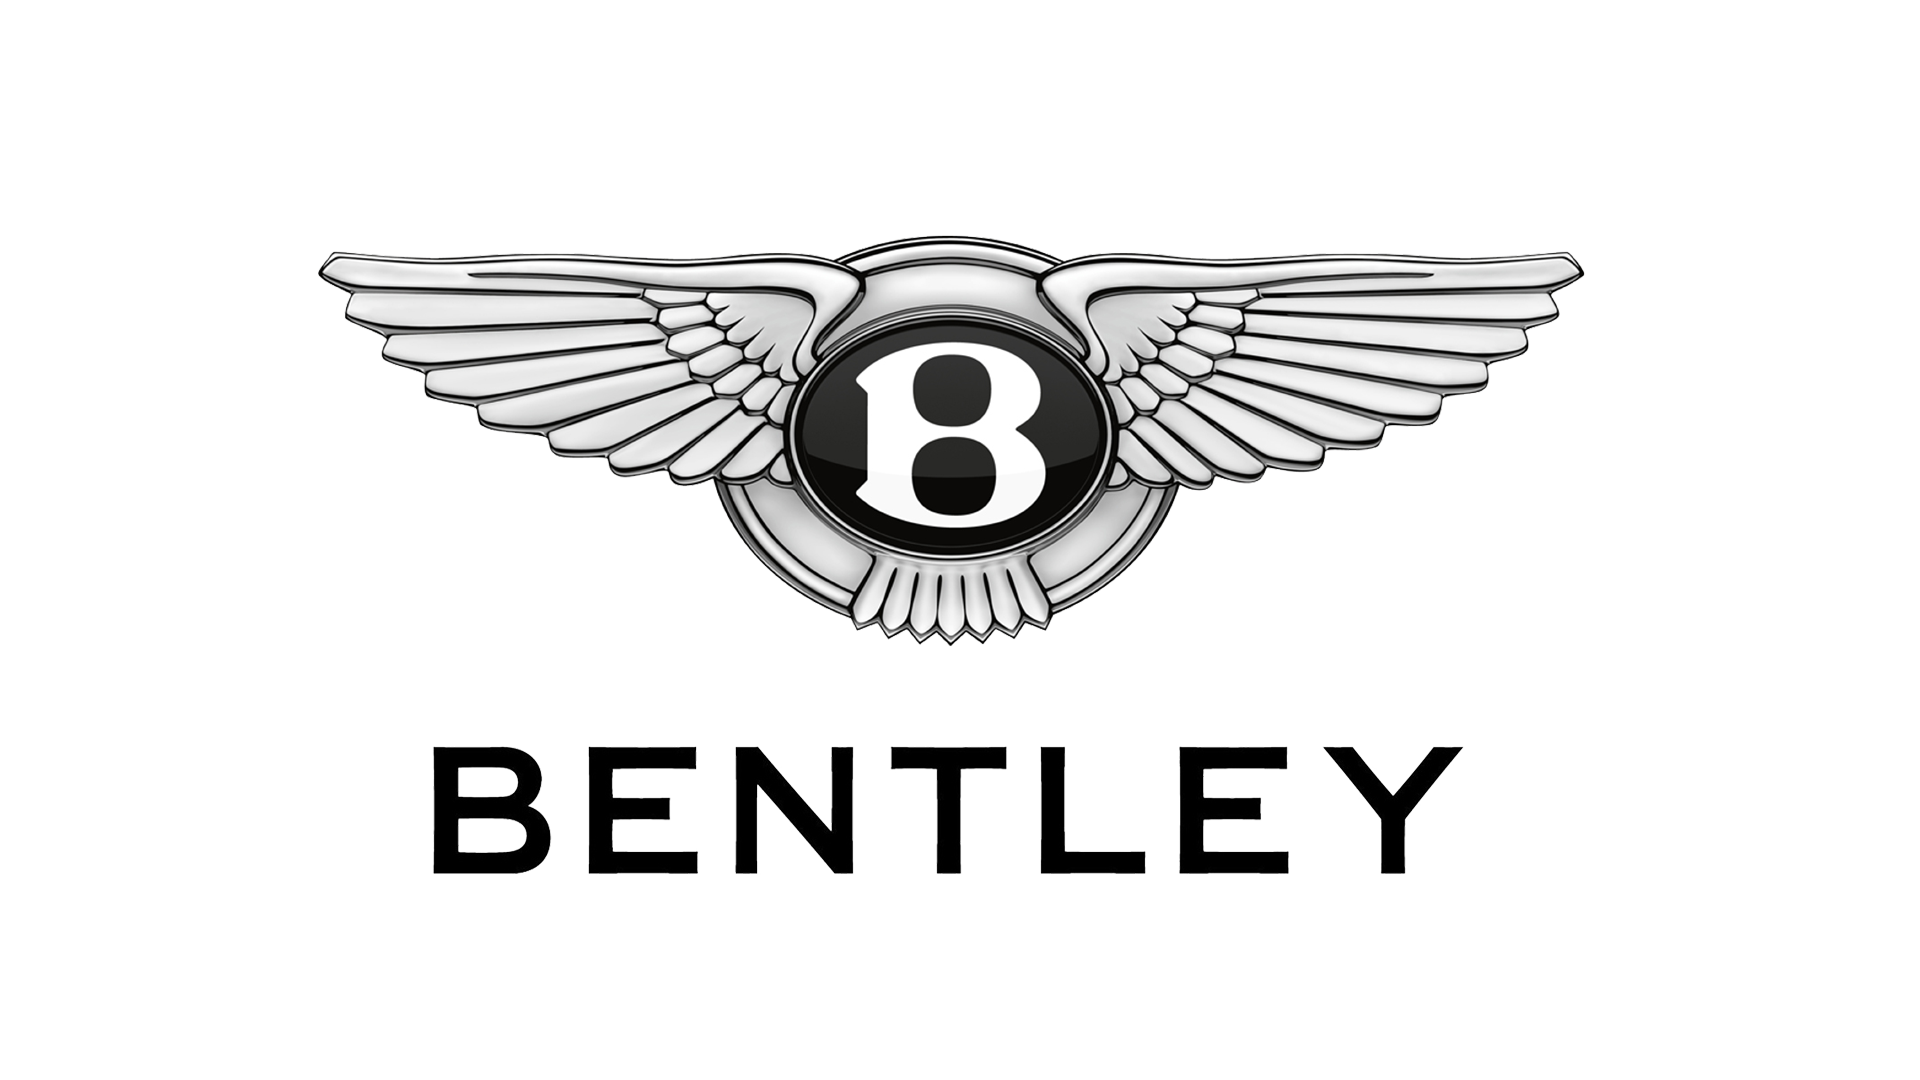 Bentley logo 1920x1080